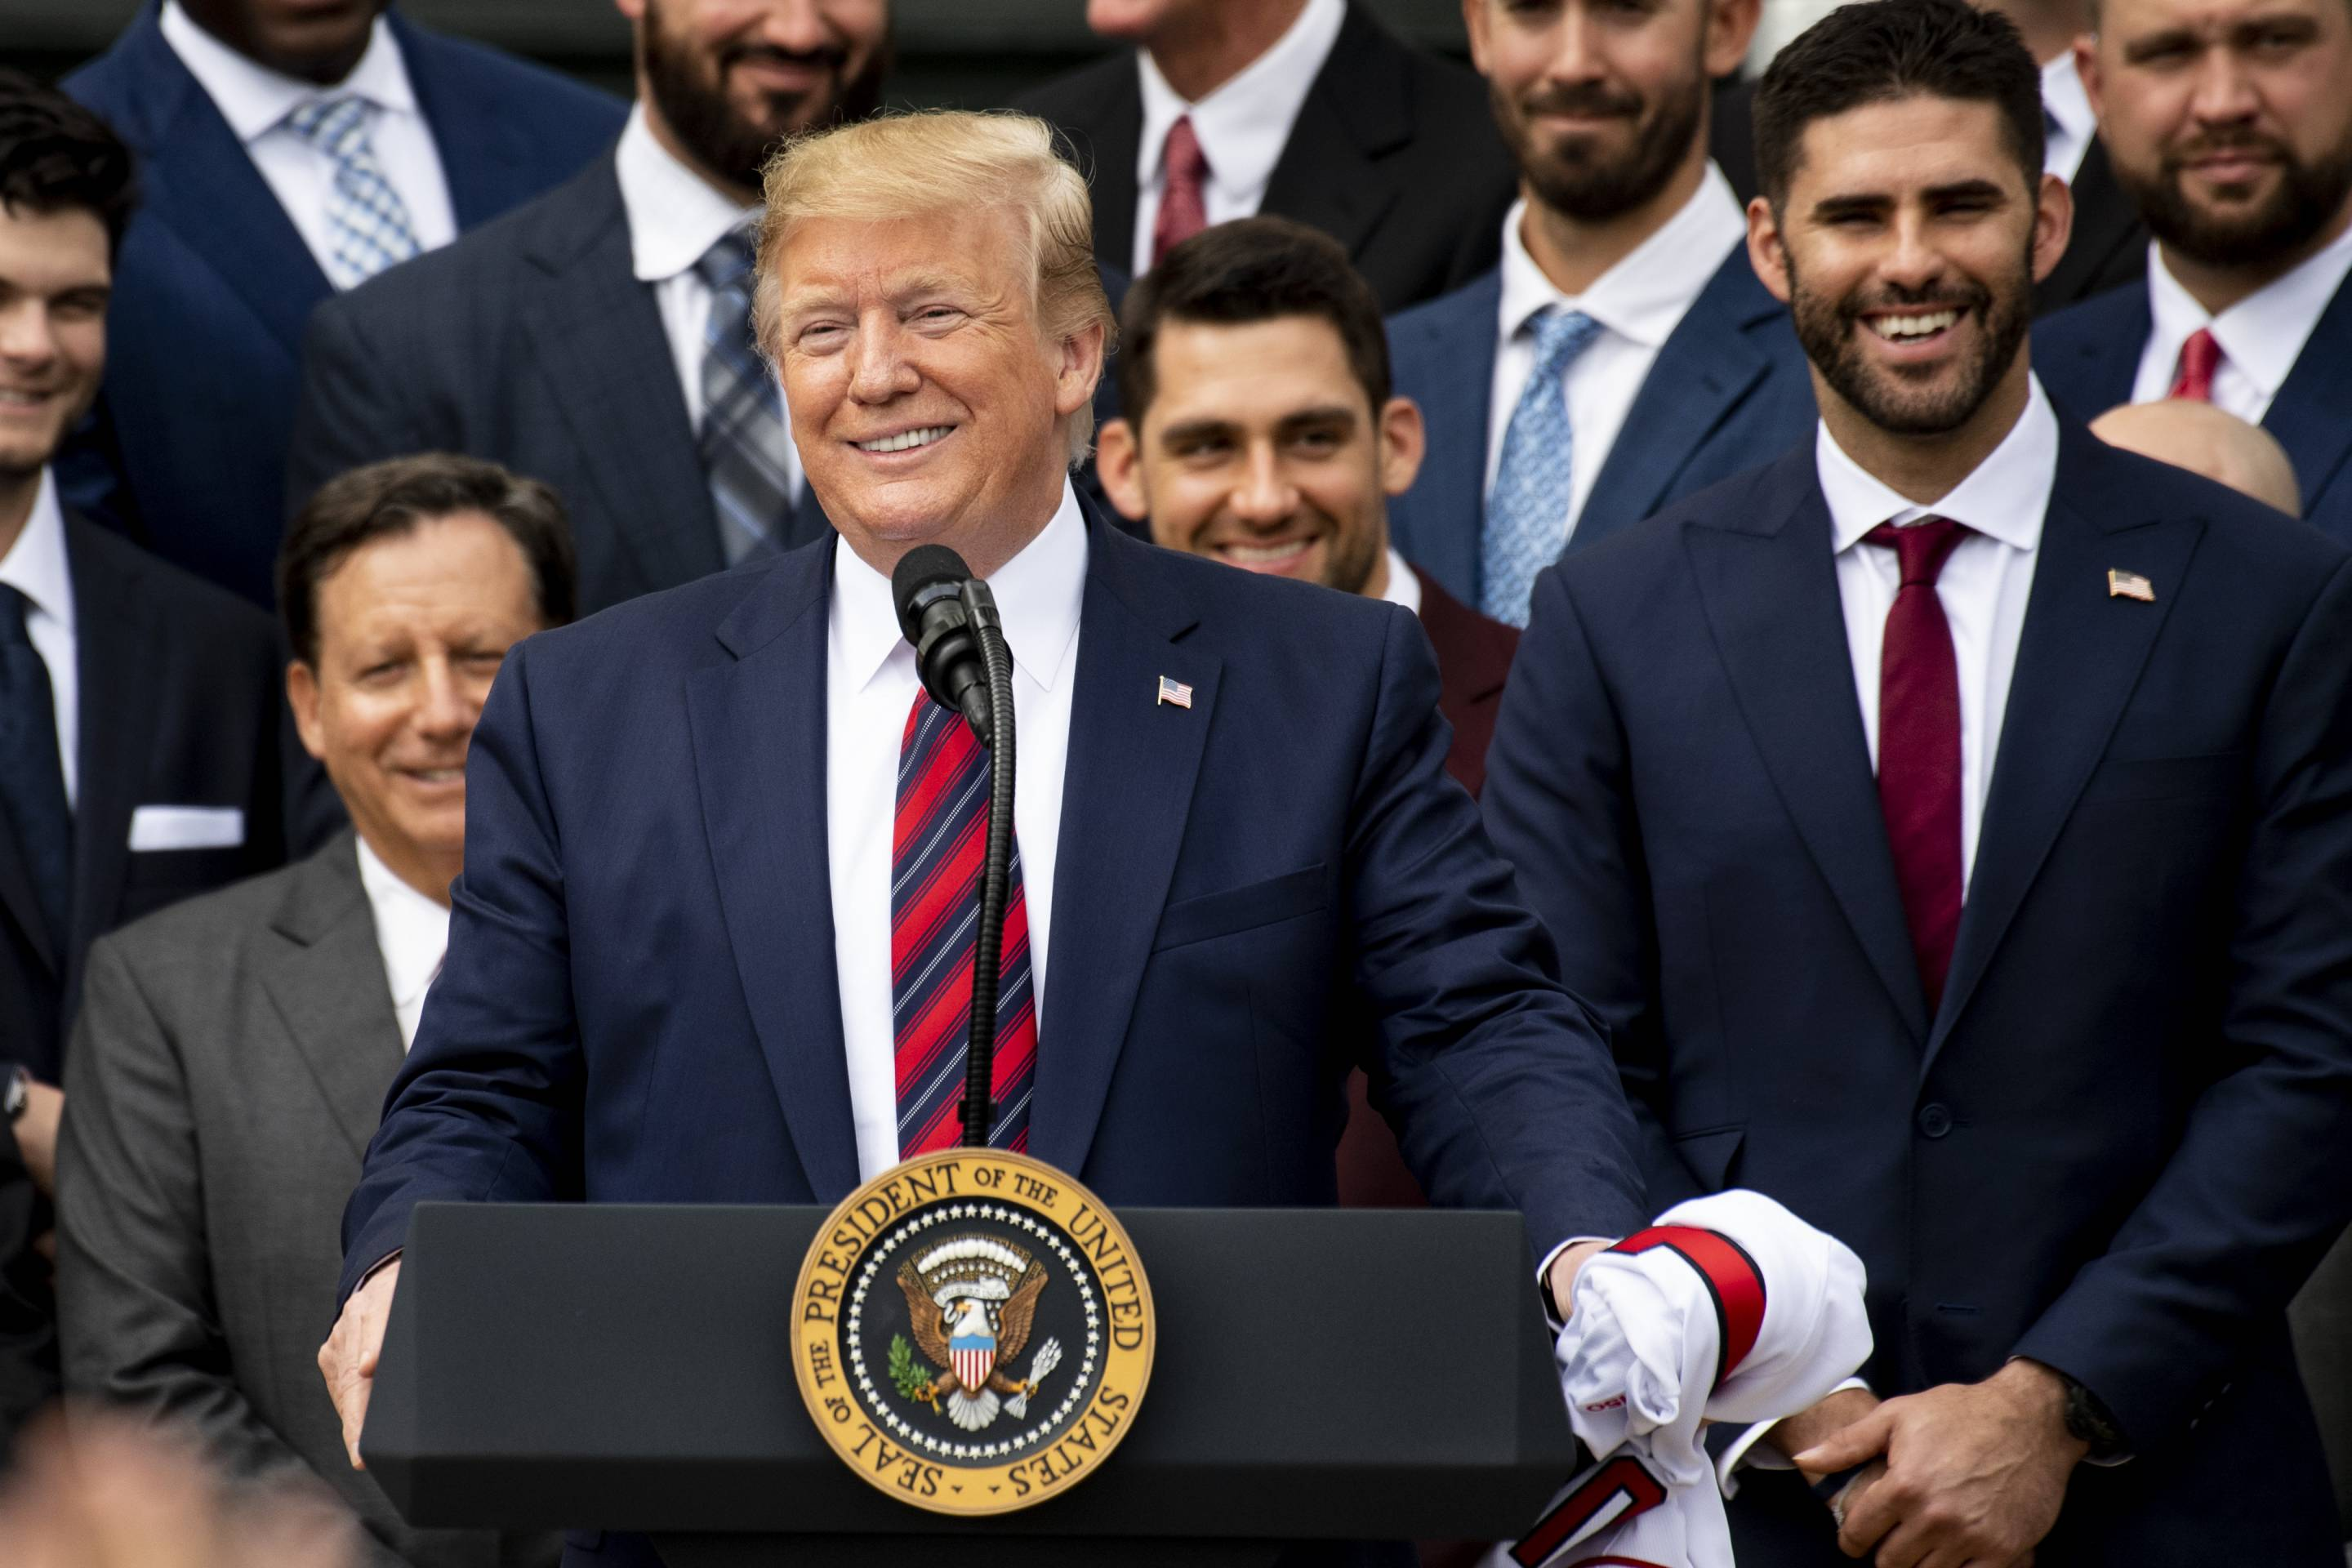 President Trump Hosts 2018 World Series Champion Boston Red Sox At White House